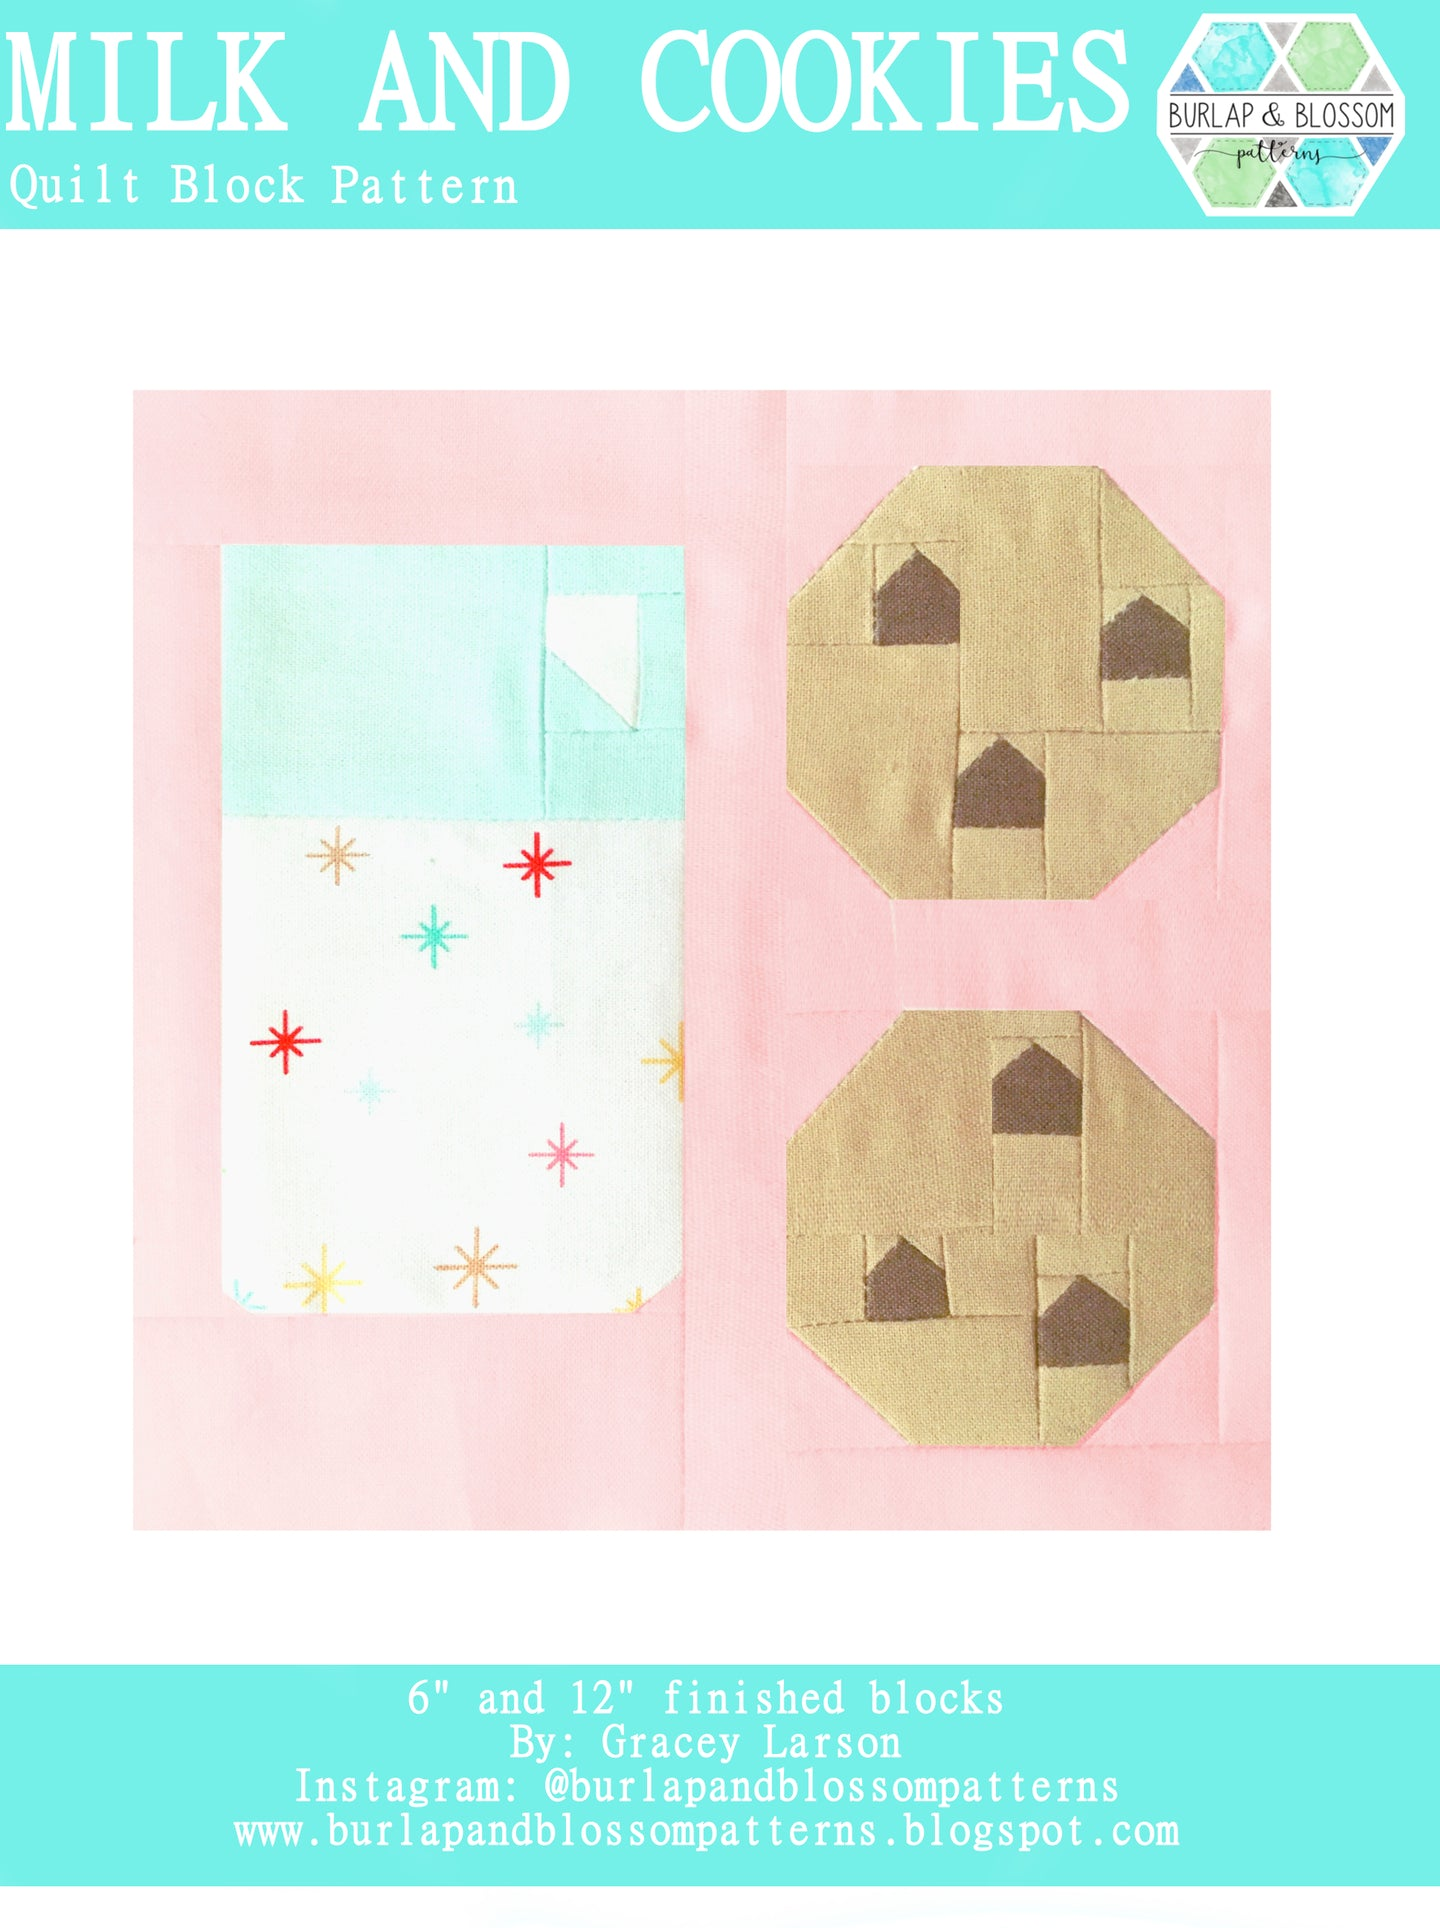 Pattern, Milk and Cookies Quilt Block by Burlap and Blossom (digital download)